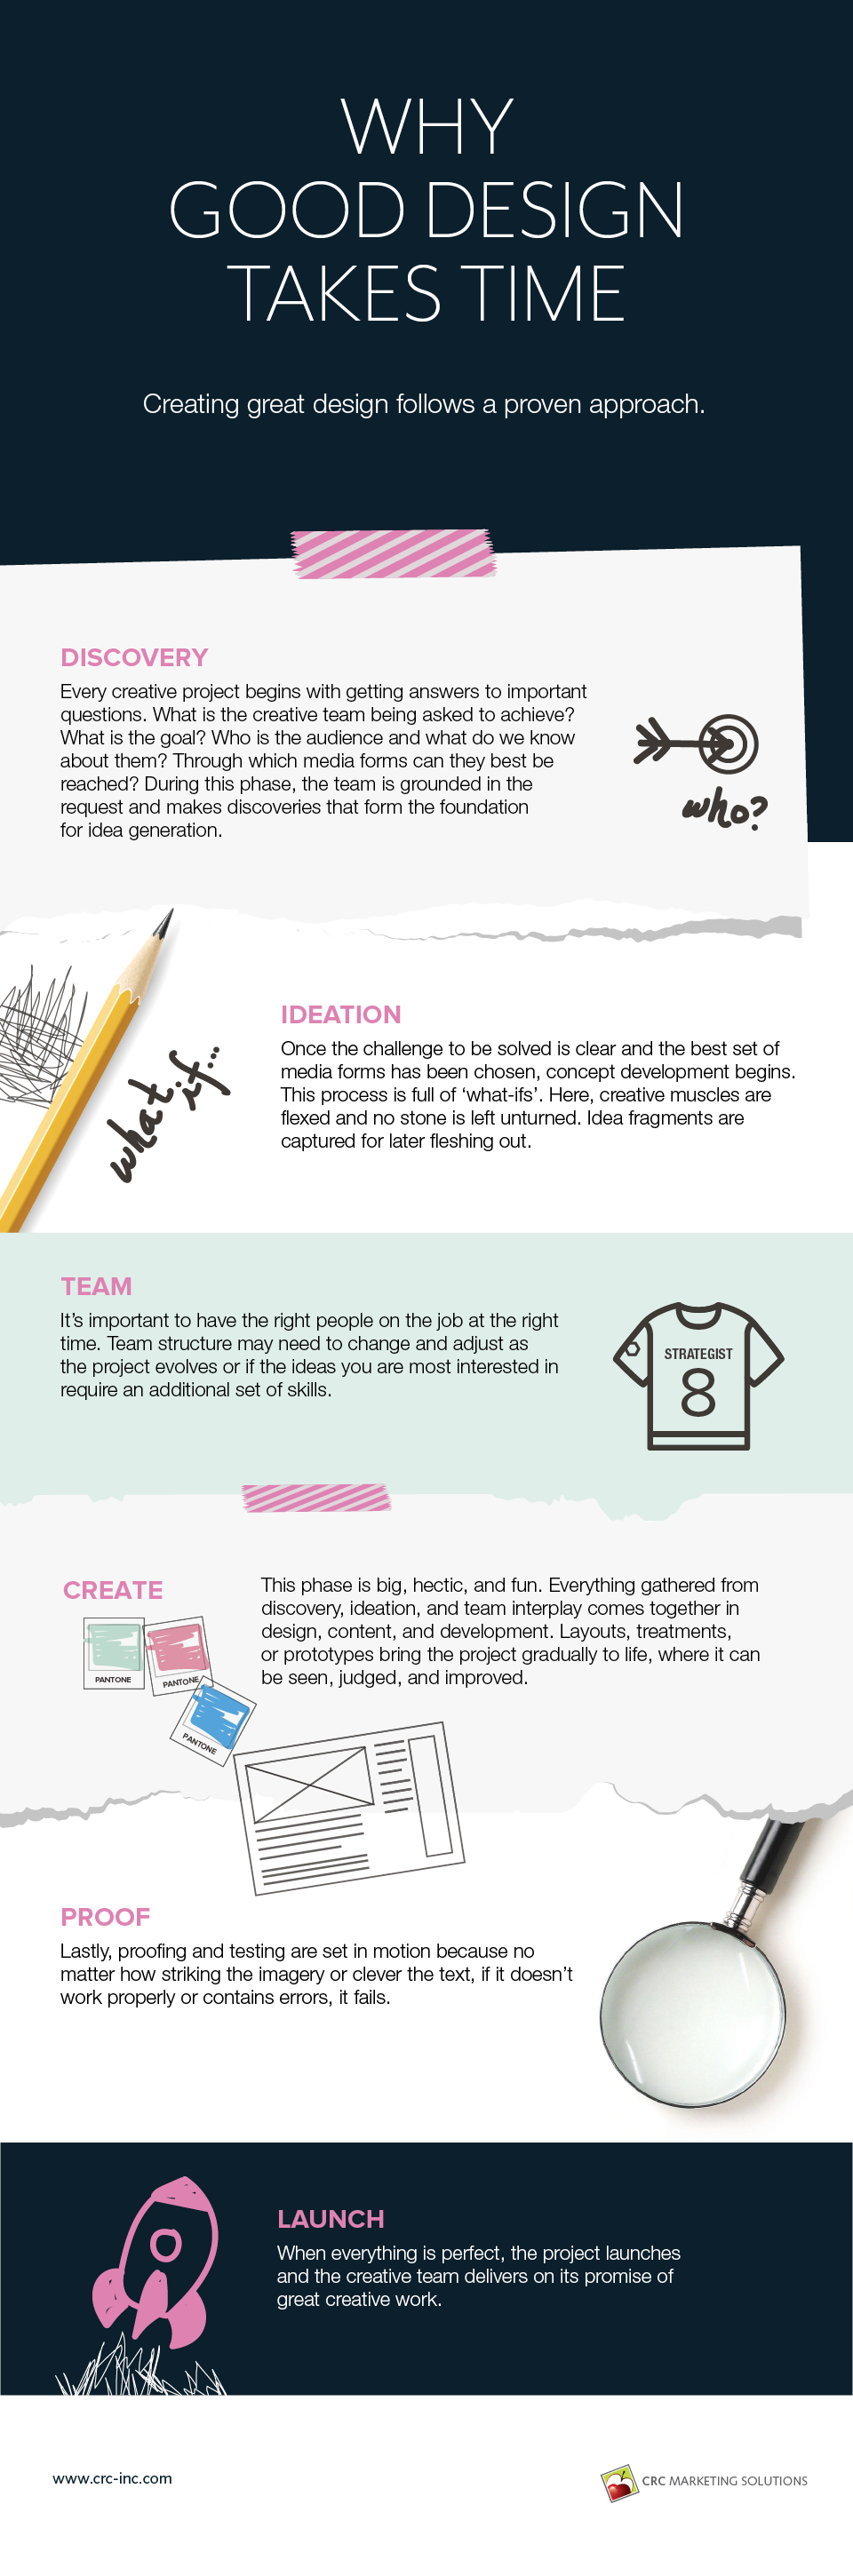 Why good design takes time infographic